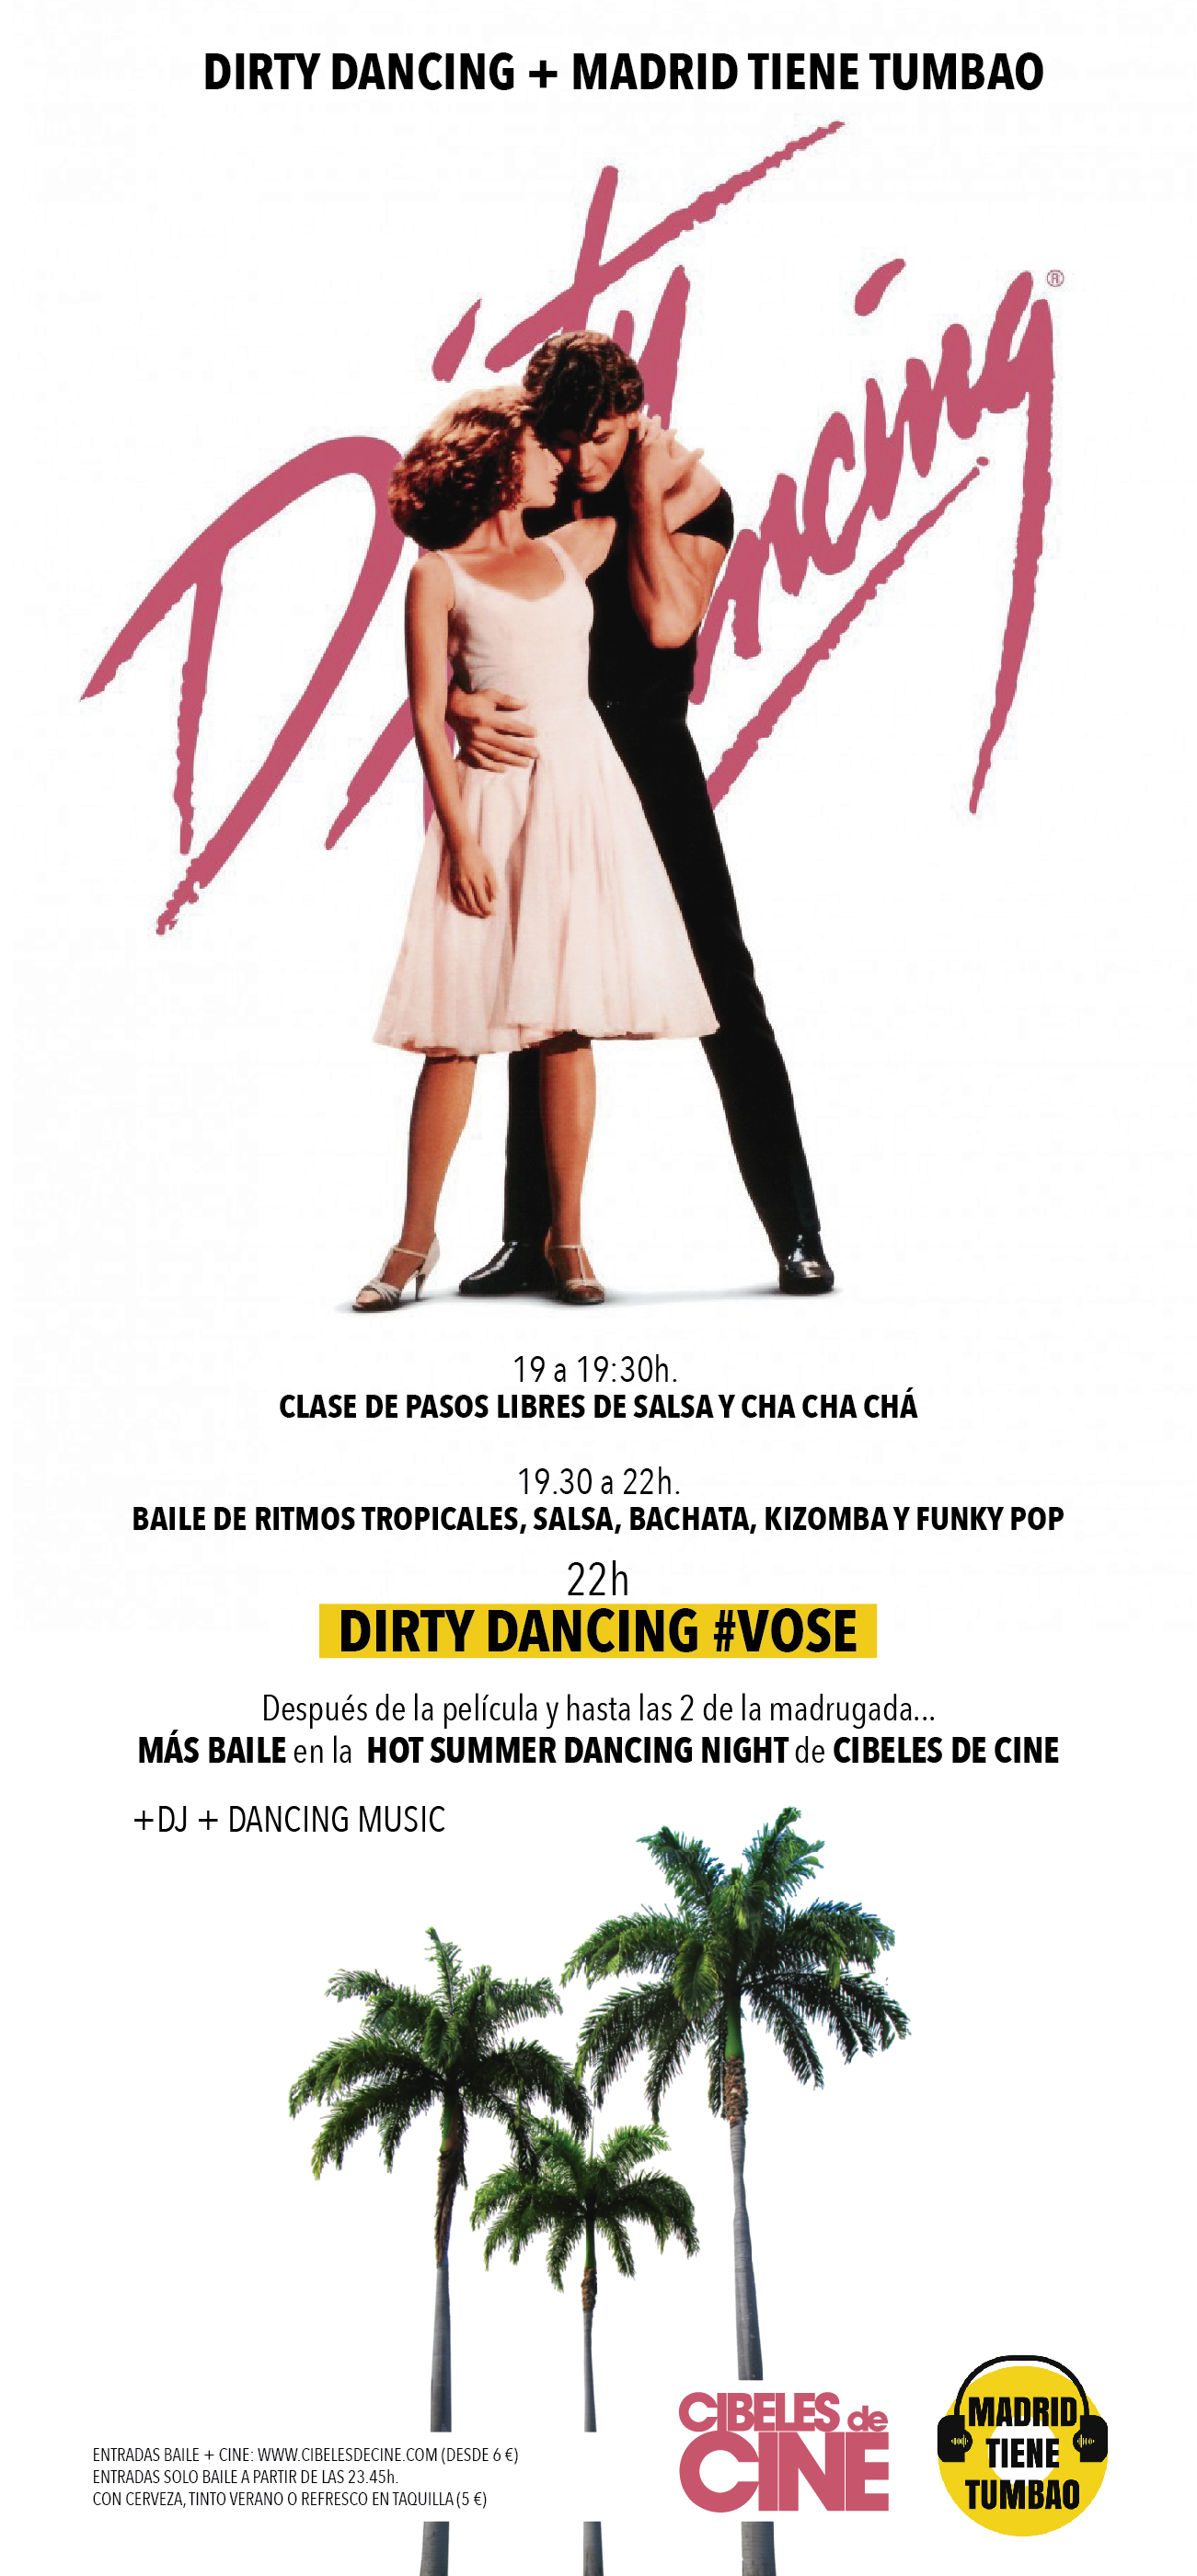 Cibeles de cine - Dirty Dancing